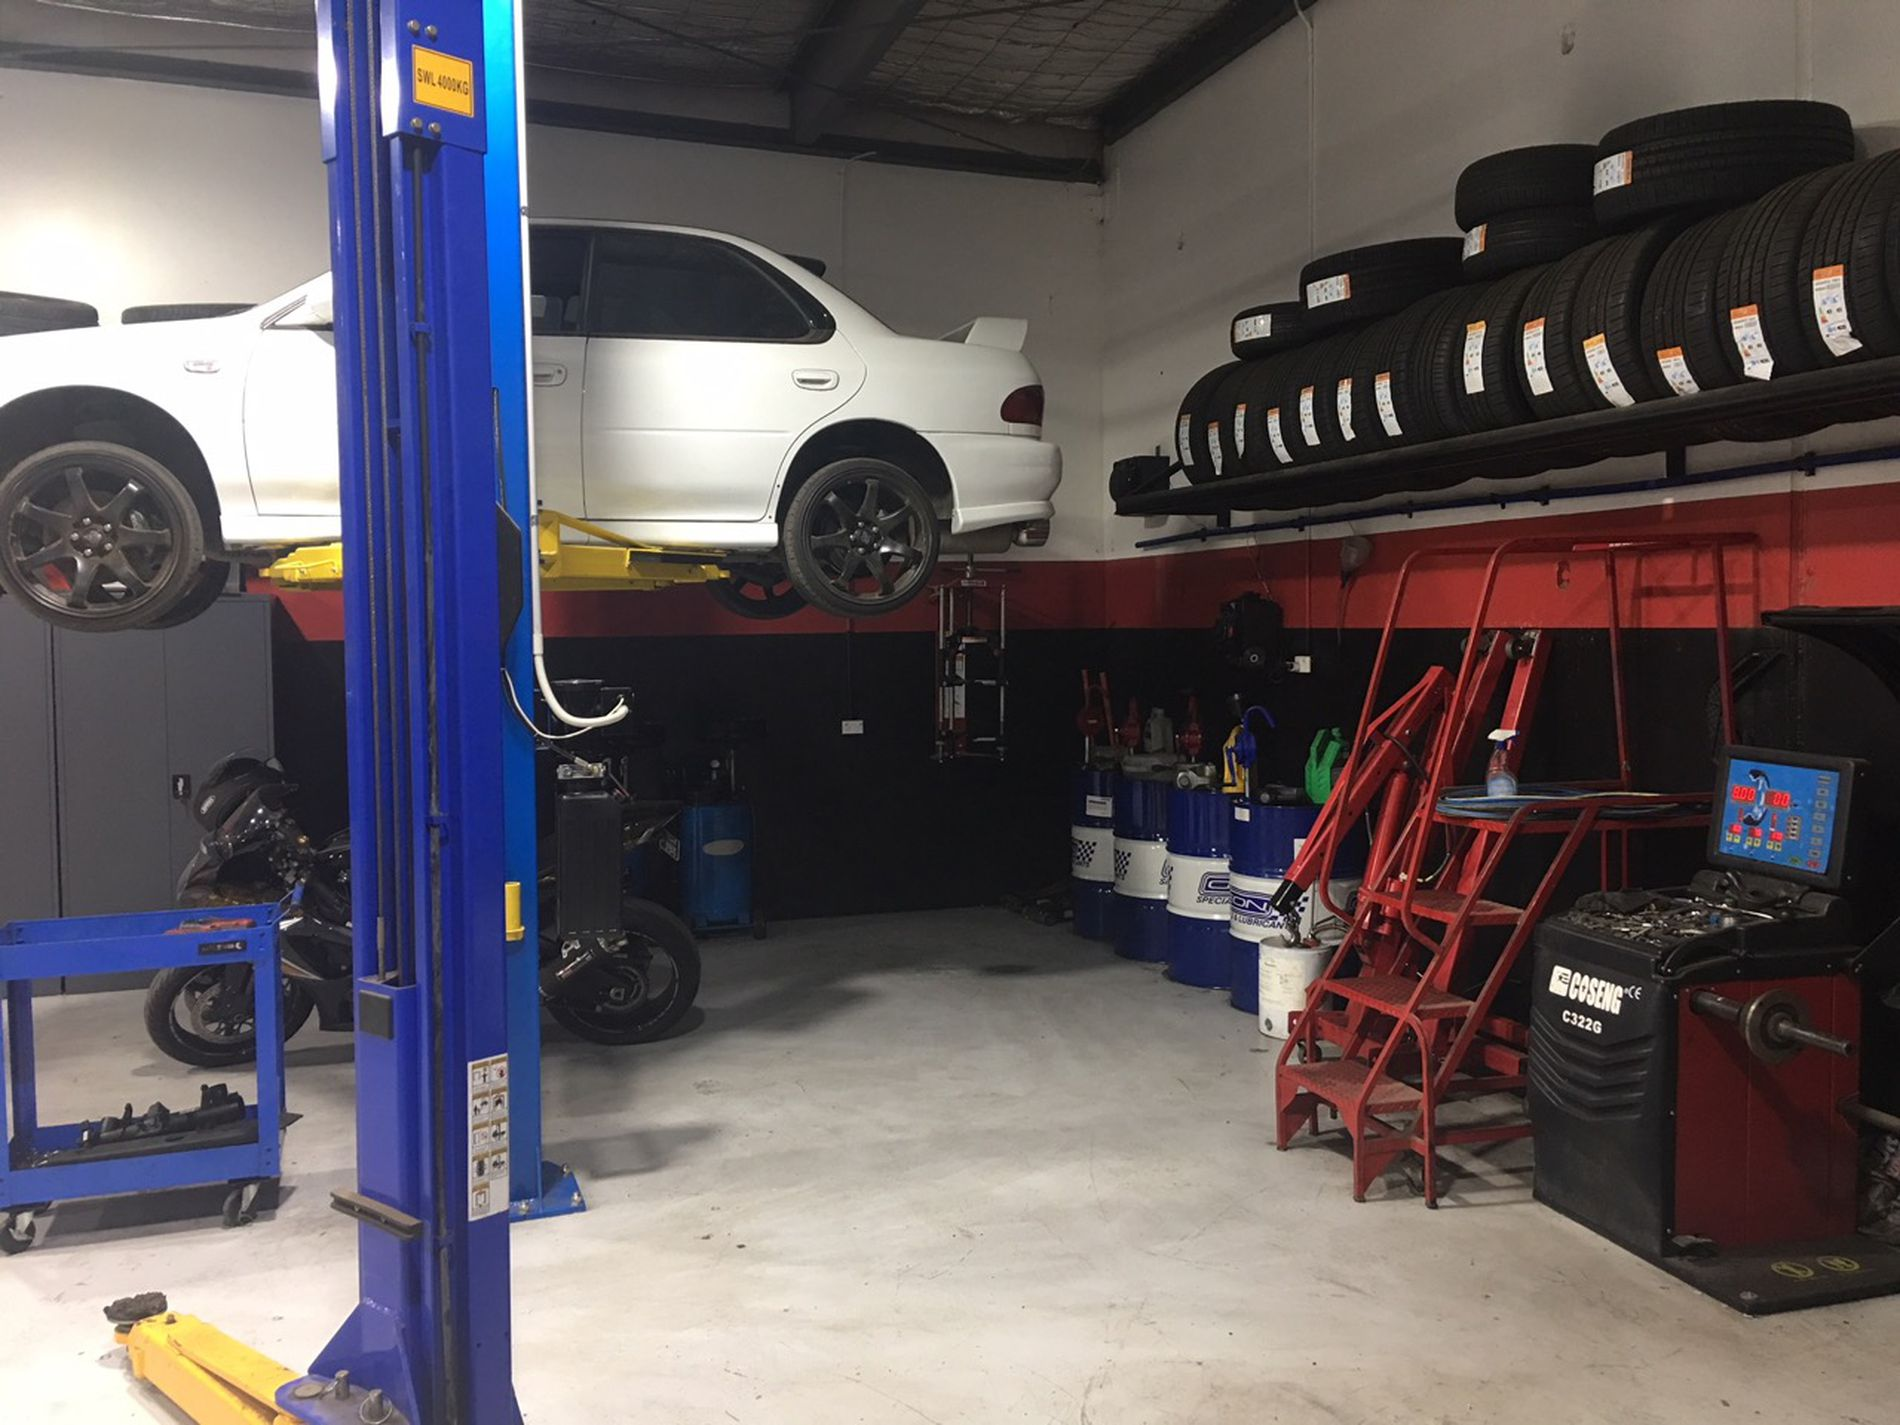 Tyre and Automotive Service Business For Sale Hoppers Crossing